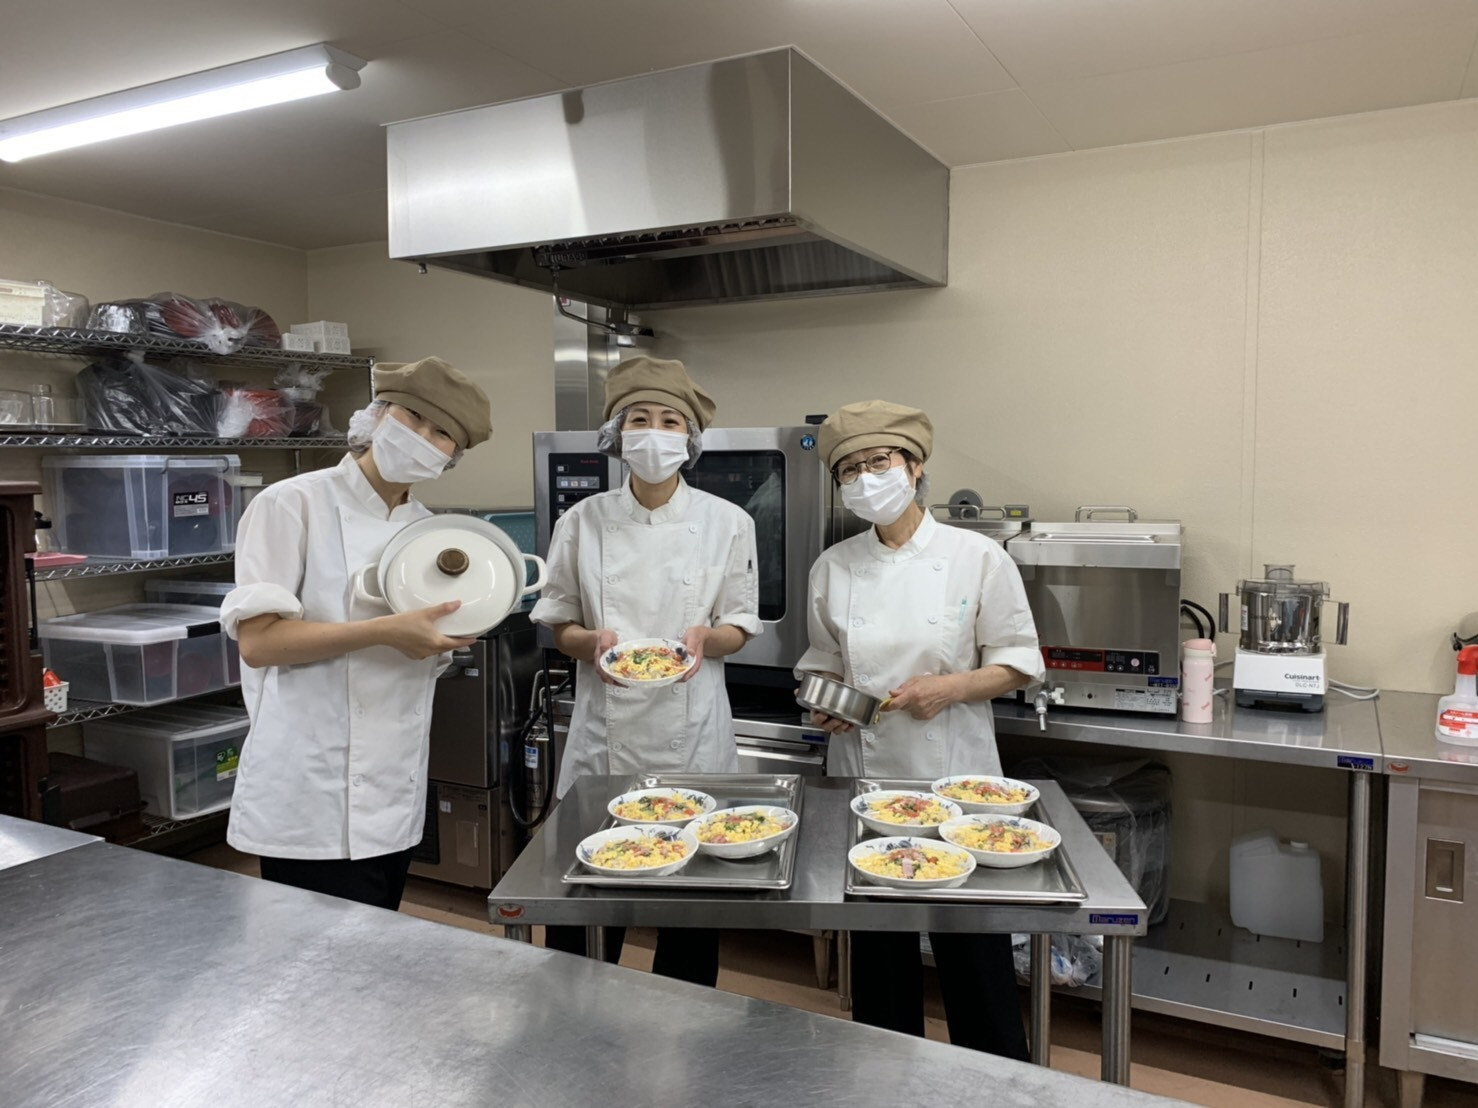 Cooking support staff in Kanagawa wanted【②Yokohama】